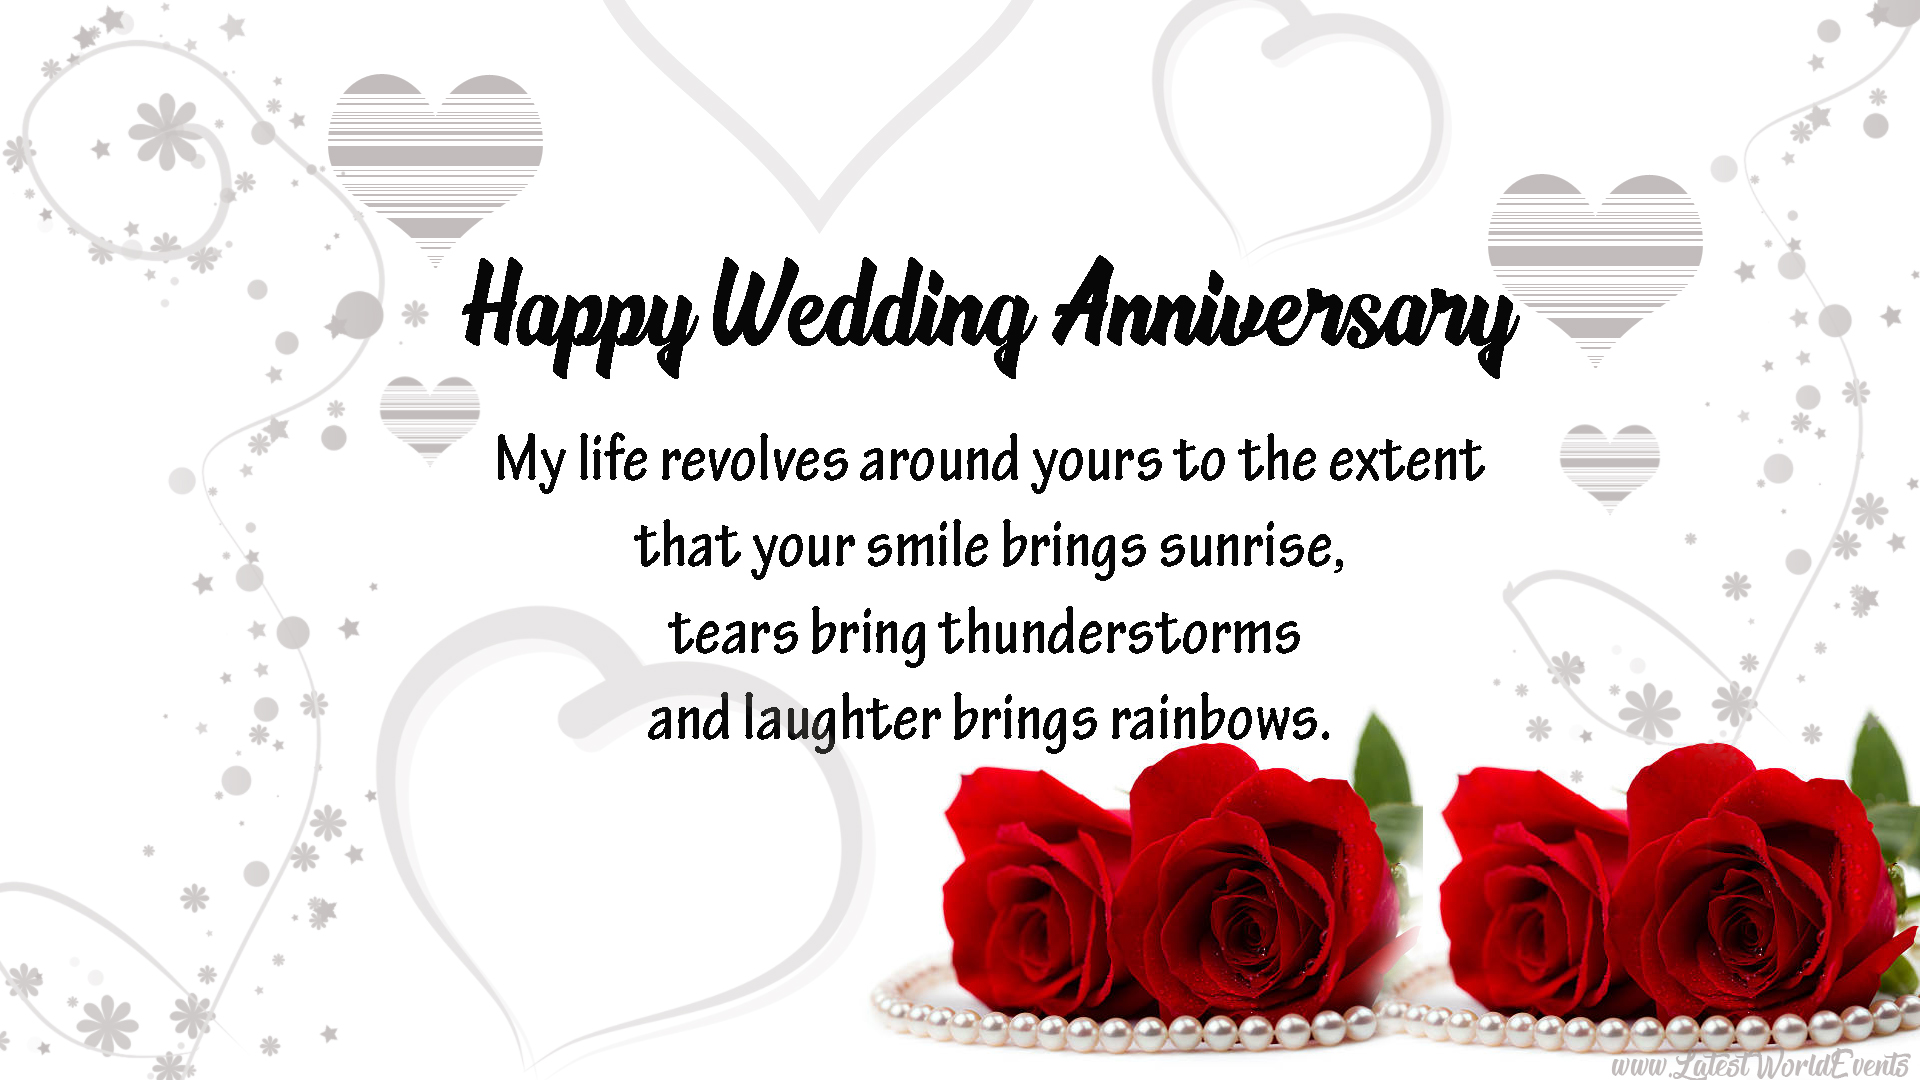 Happy Wedding Anniversary Quotes Free Download